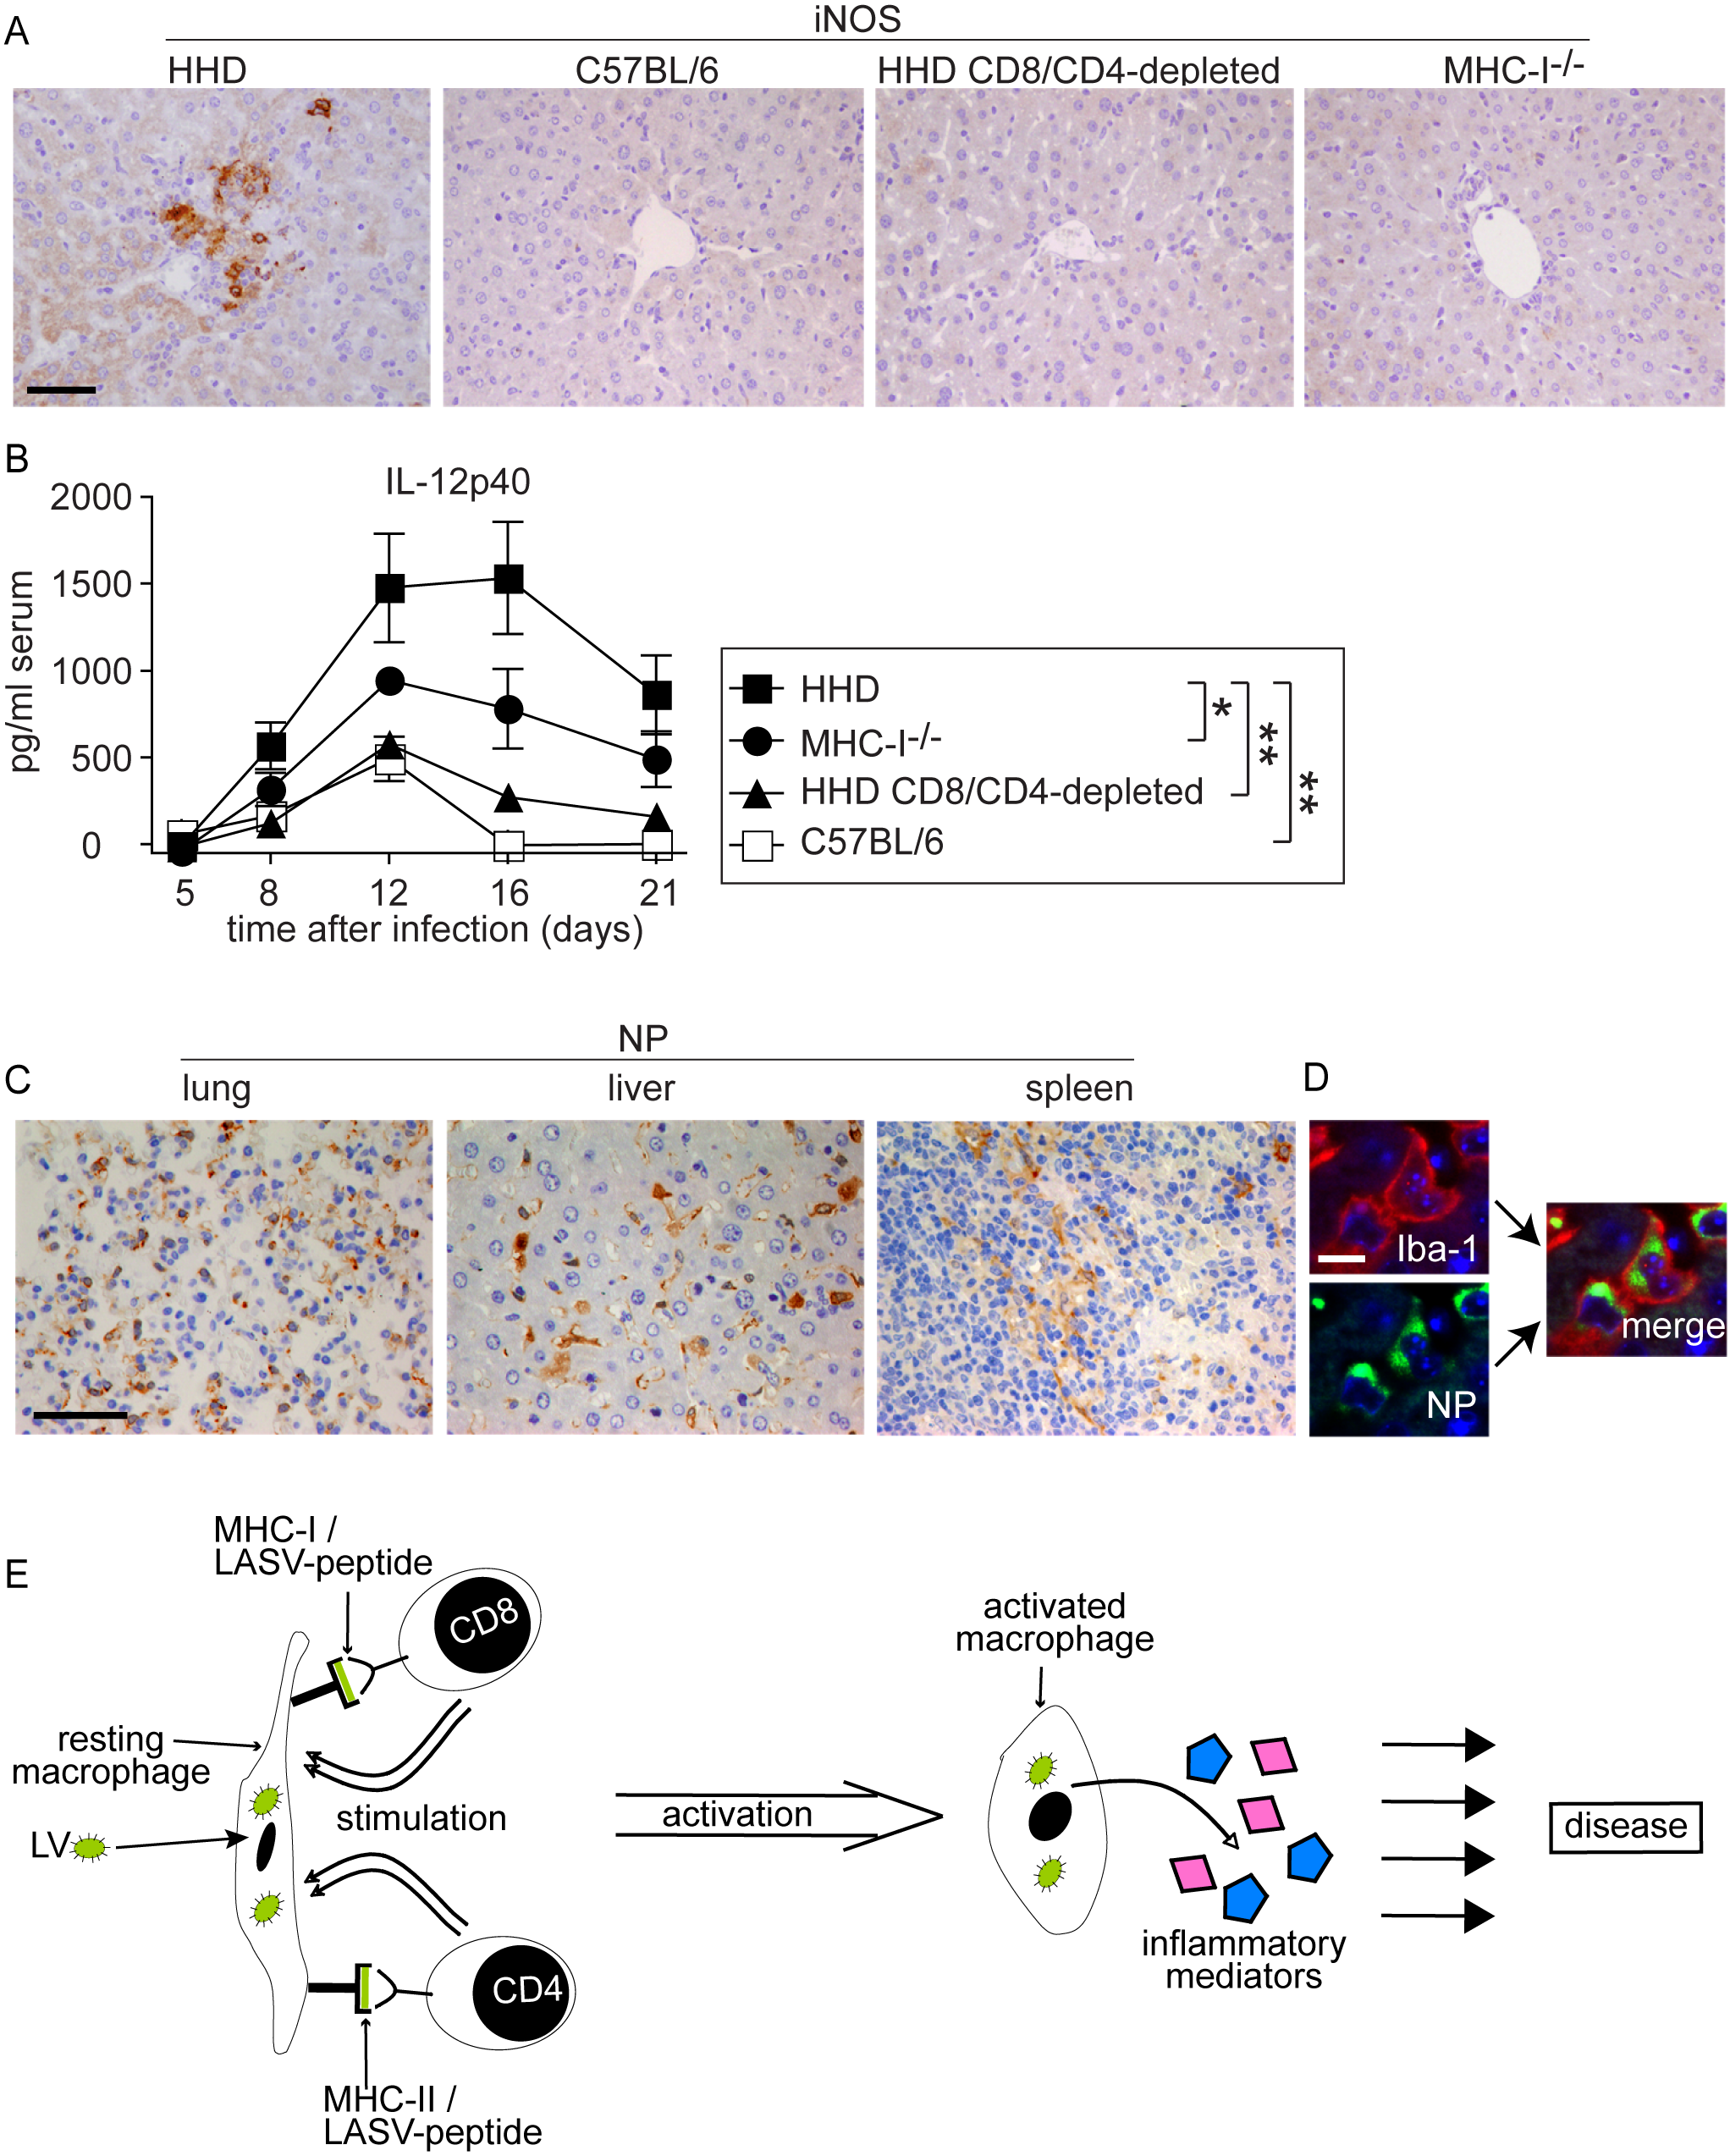 Monocytes/macrophages represent a major target of LASV and produce inflammatory mediators in a T cell-dependent fashion.